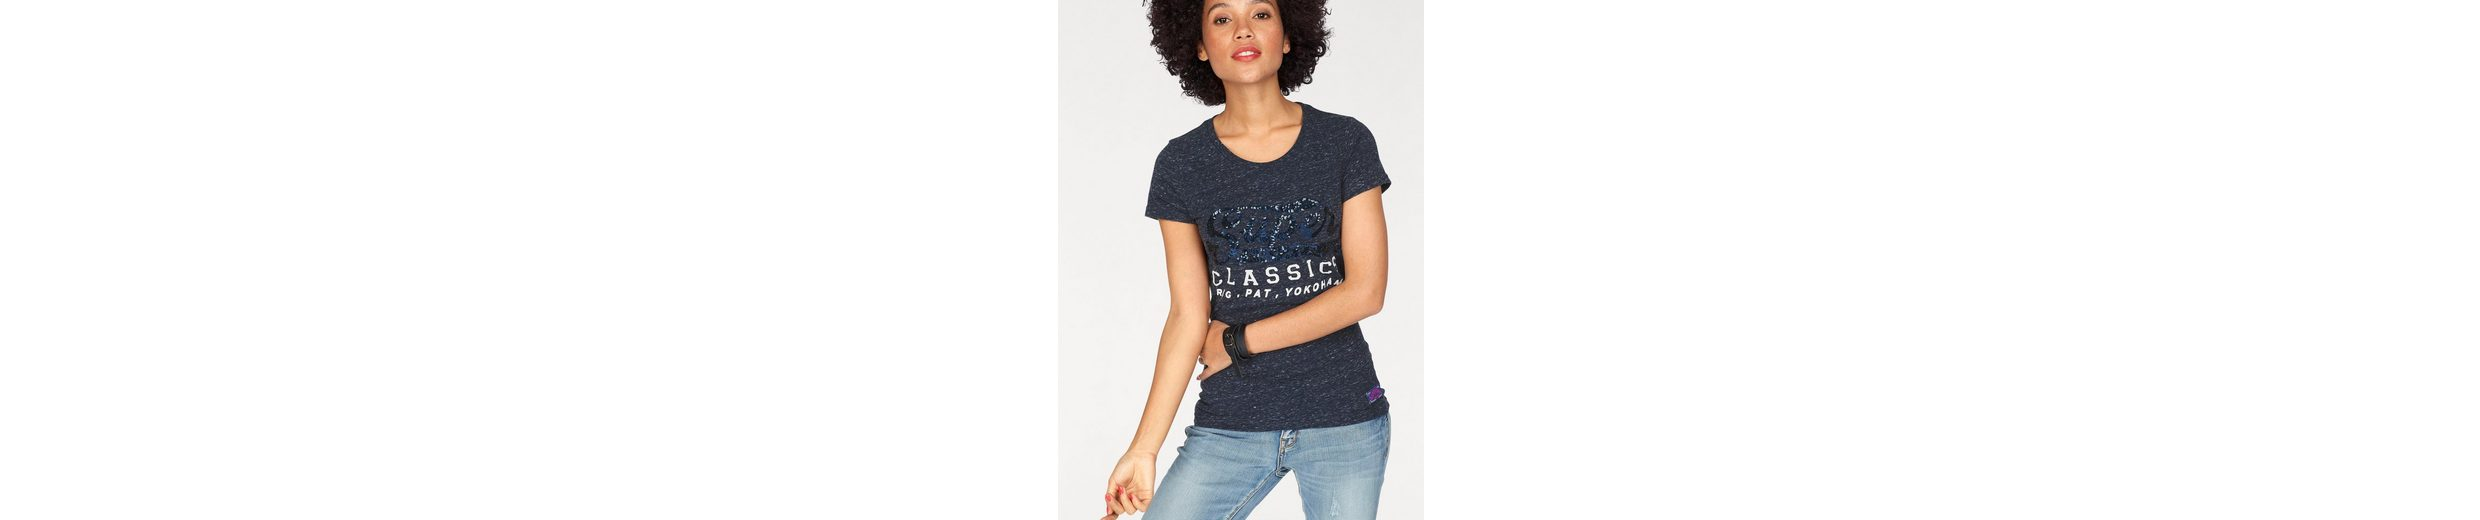 Shirt TEE mit Applikation ENTRY T SEQUIN Superdry Pailletten Logo CLASSIC gw7Zqnf